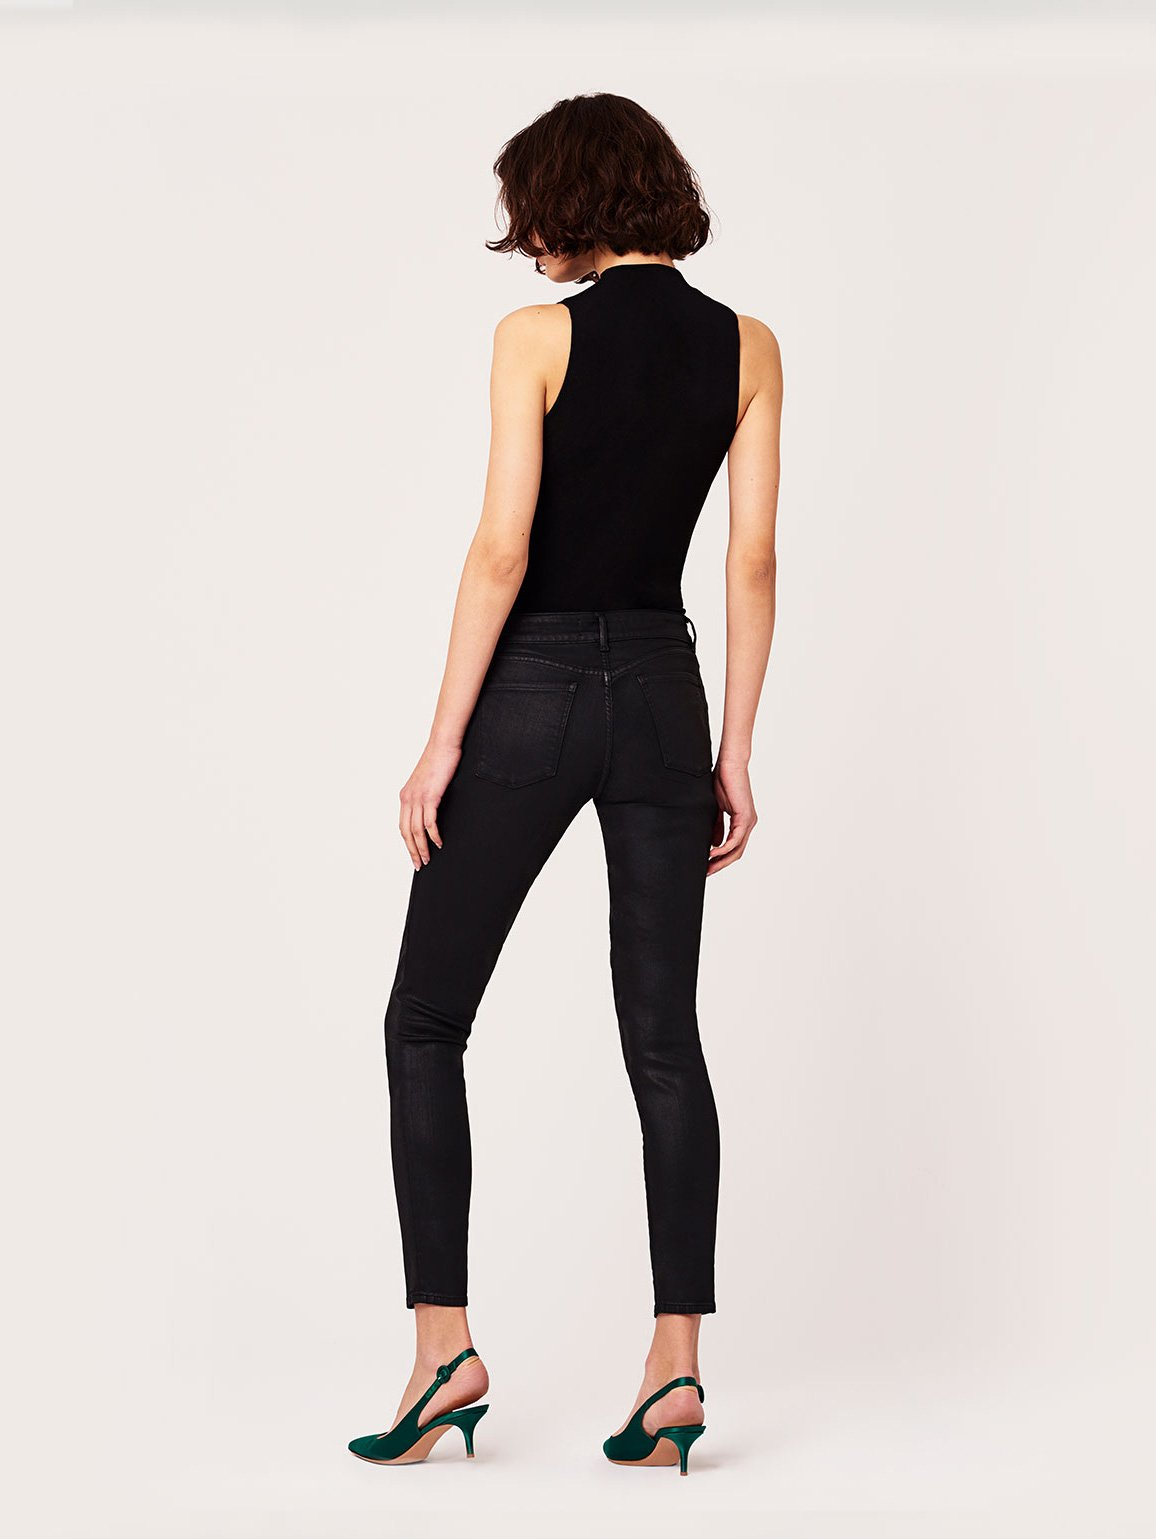 Women - Emma Power Legging Medina - DL1961